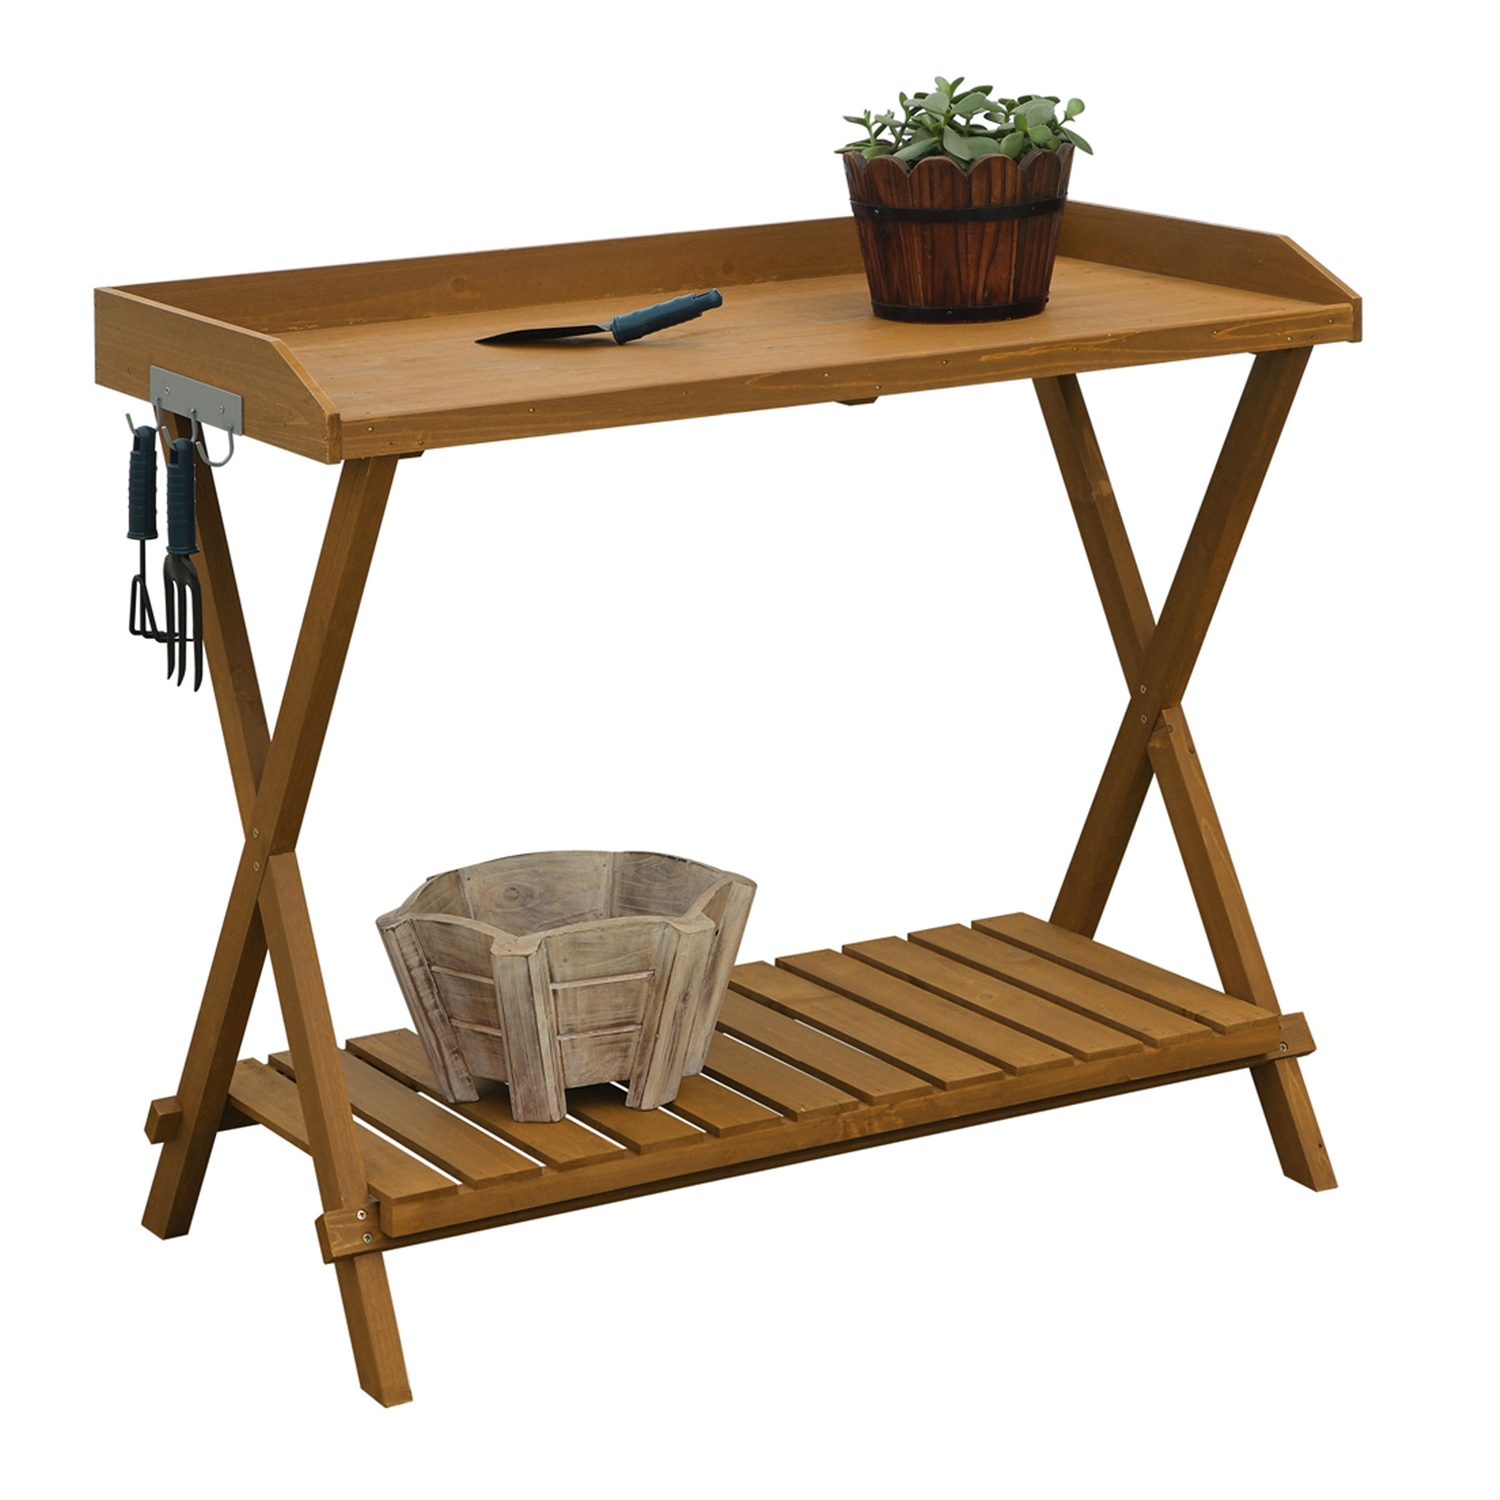 Outdoor Folding Garden Table Potting Bench With Slatted Bottom Fastfurnishings